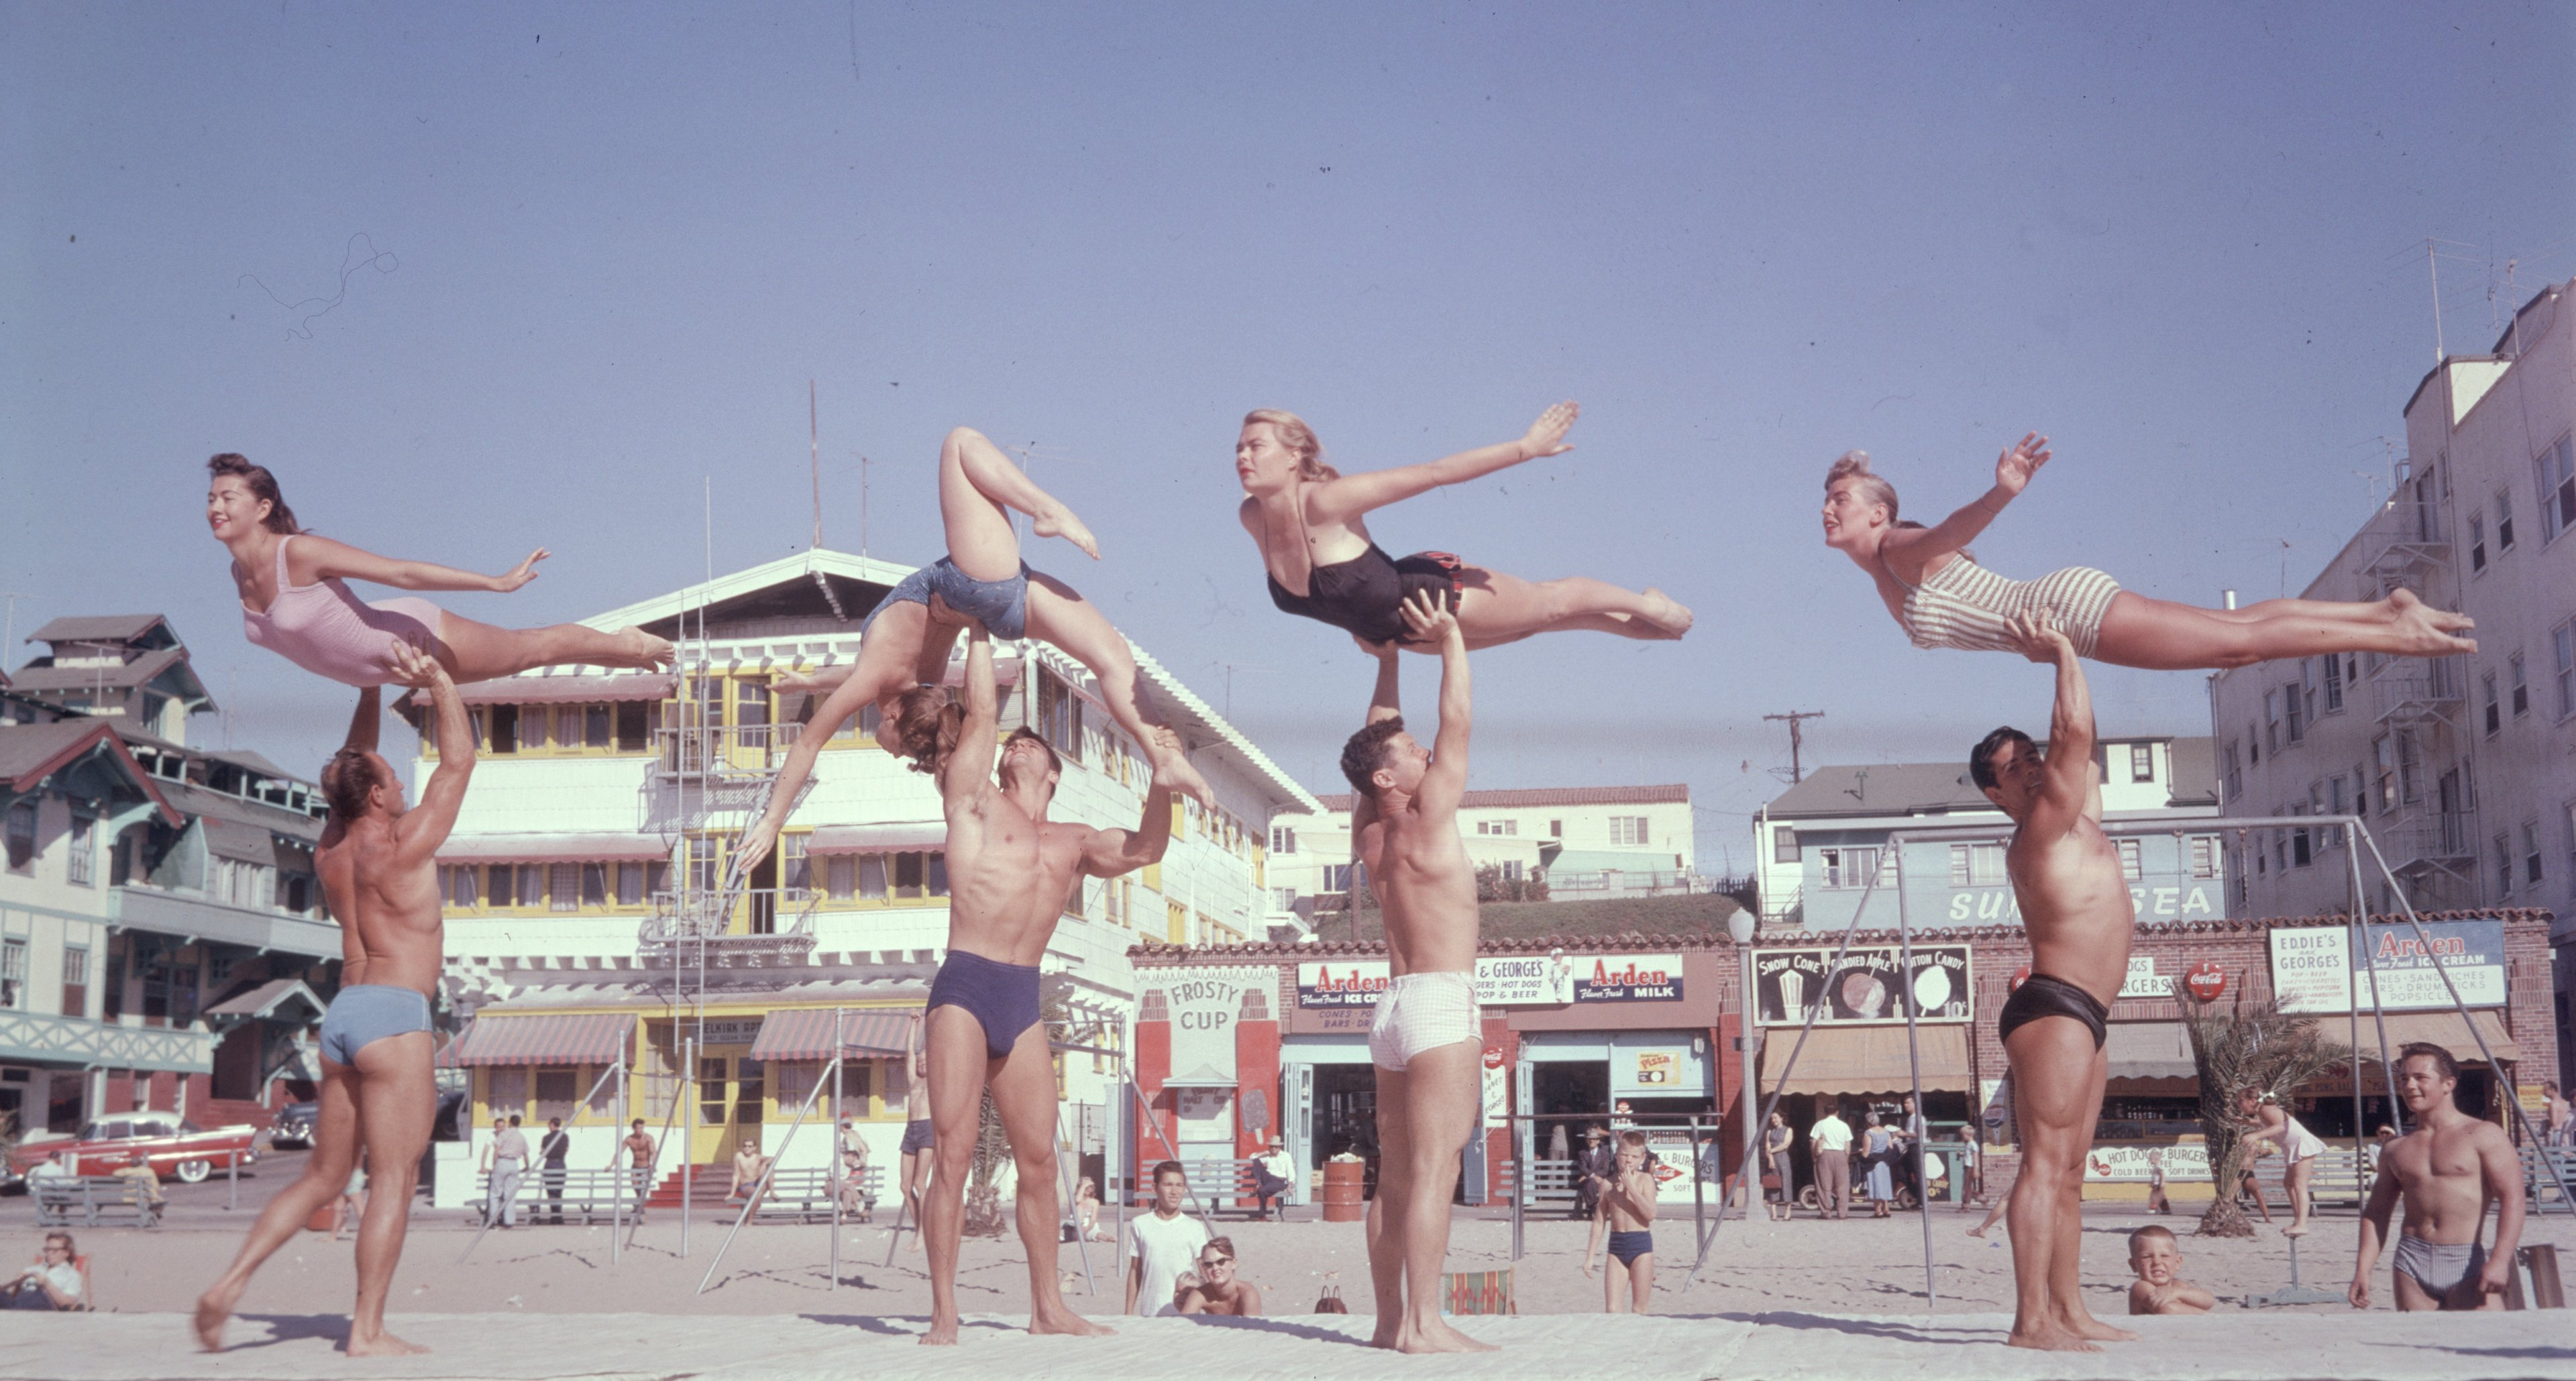 Stunt performers on Muscle Beach, Santa Monica, California in 1956.